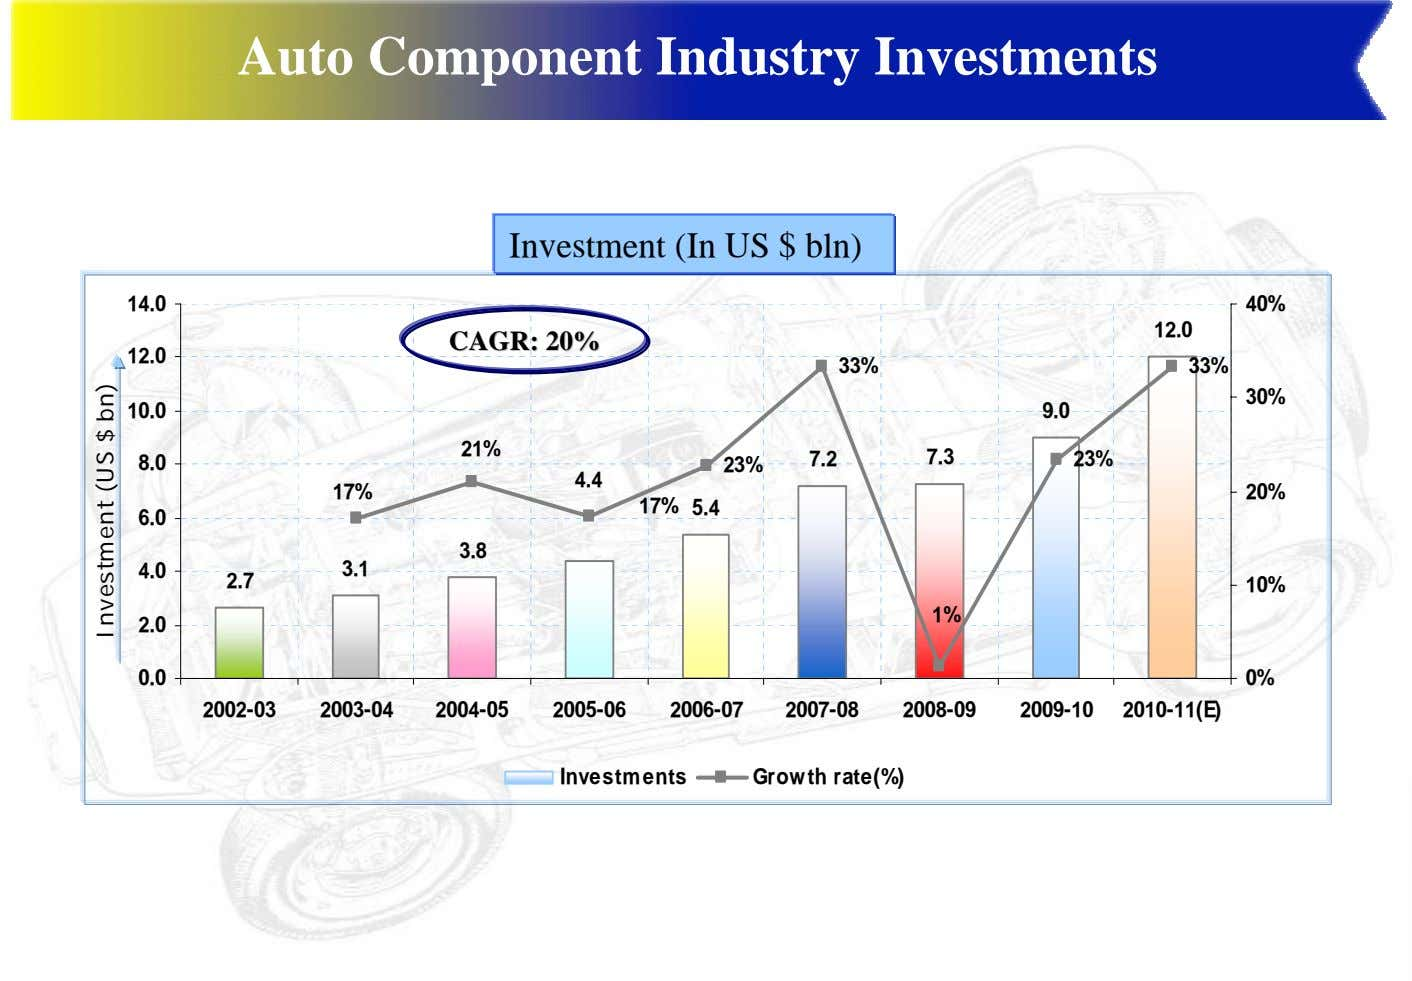 Auto Component Industry Investments Investment (In US $ bln) 14.0 40% 12.0 CAGR:CAGR: 20%20% 12.0